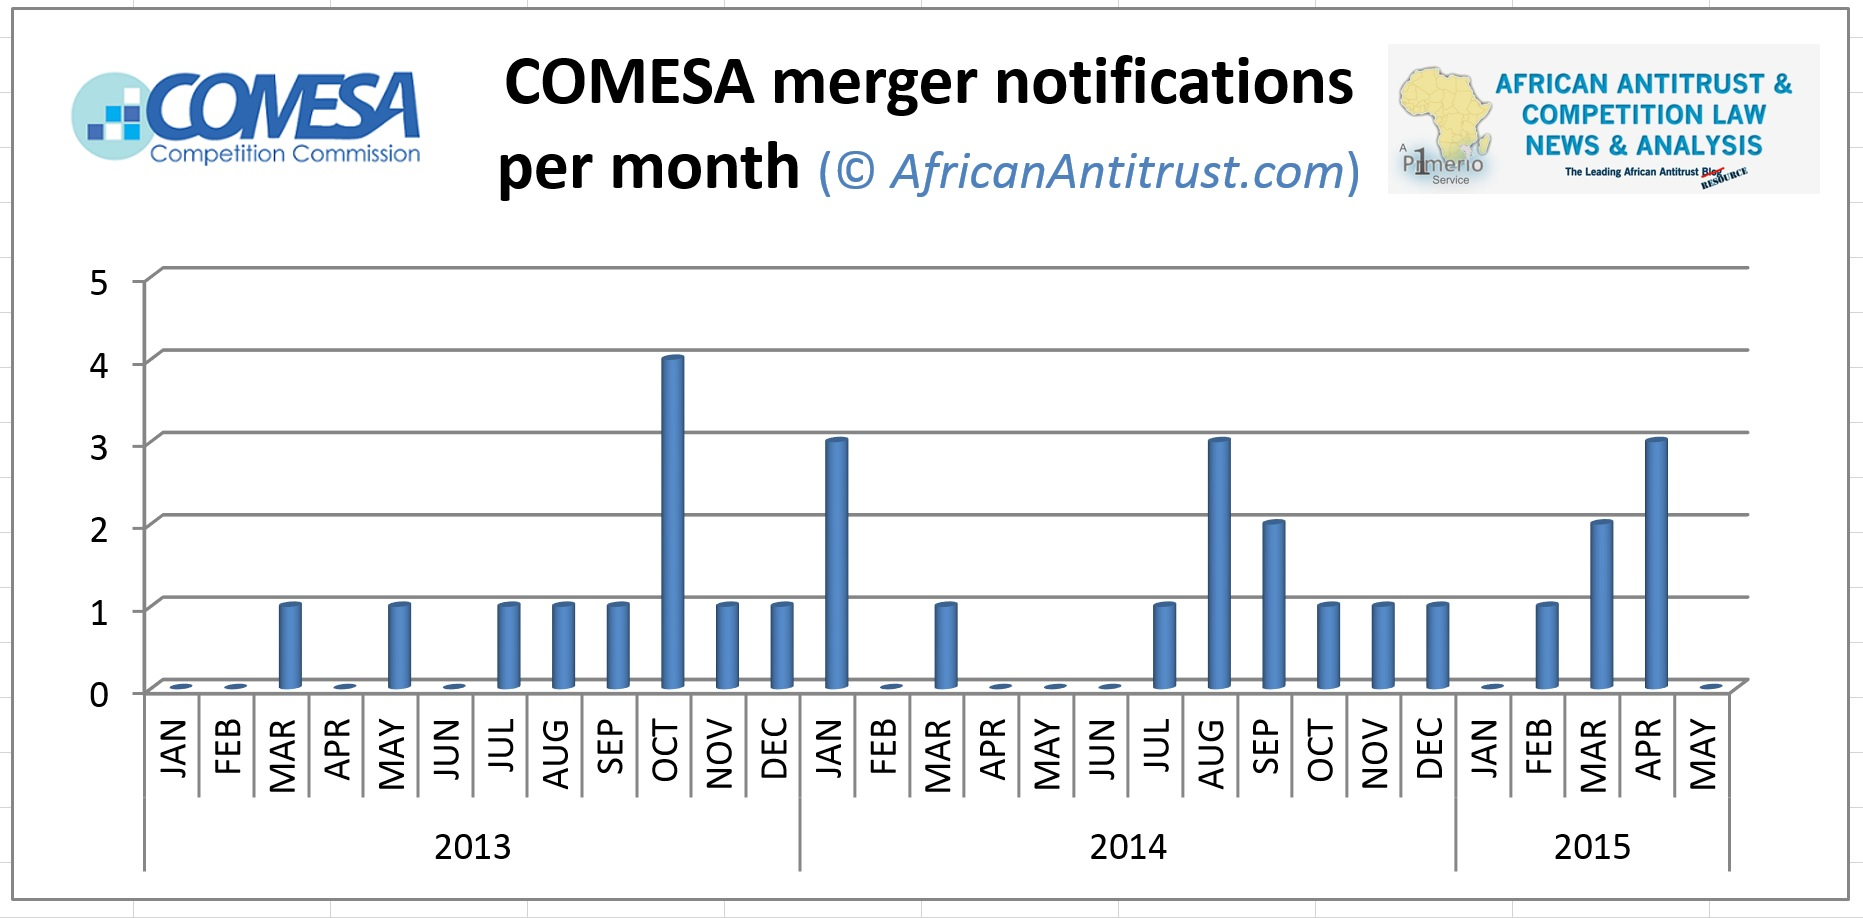 COMESA Merger Statistics as of July 2015